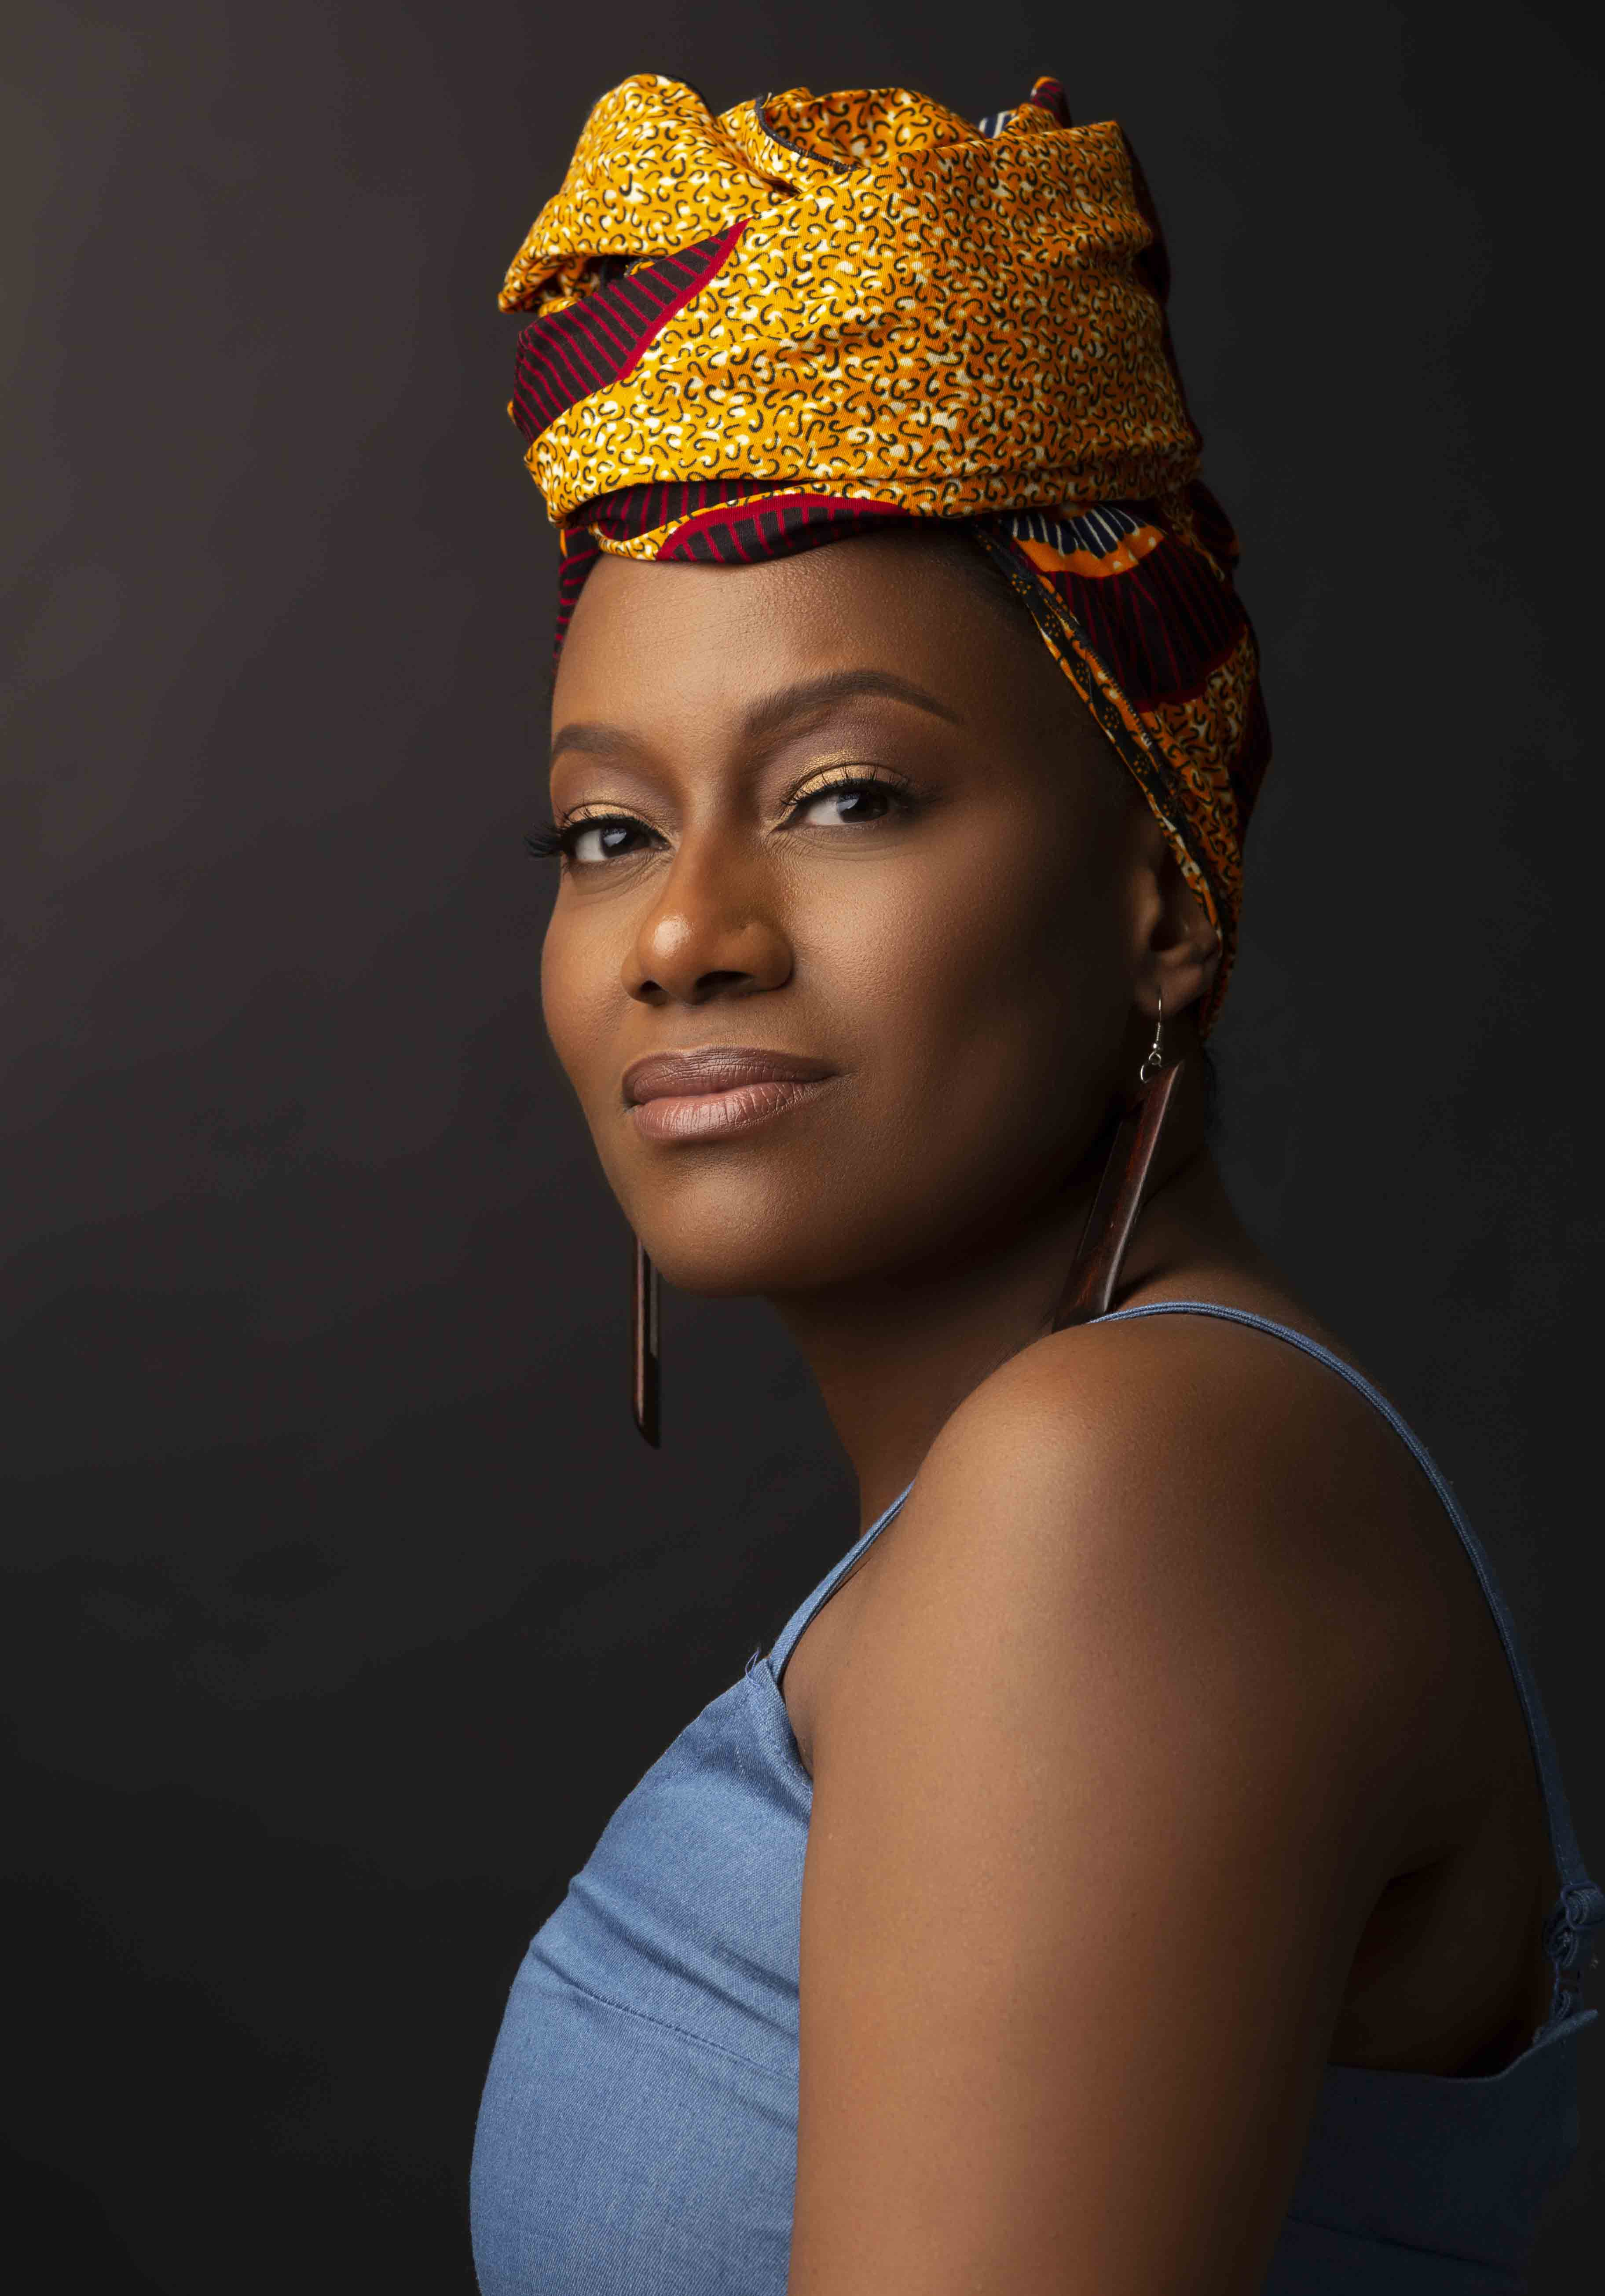 Headwrap-portrait-2-29-204353